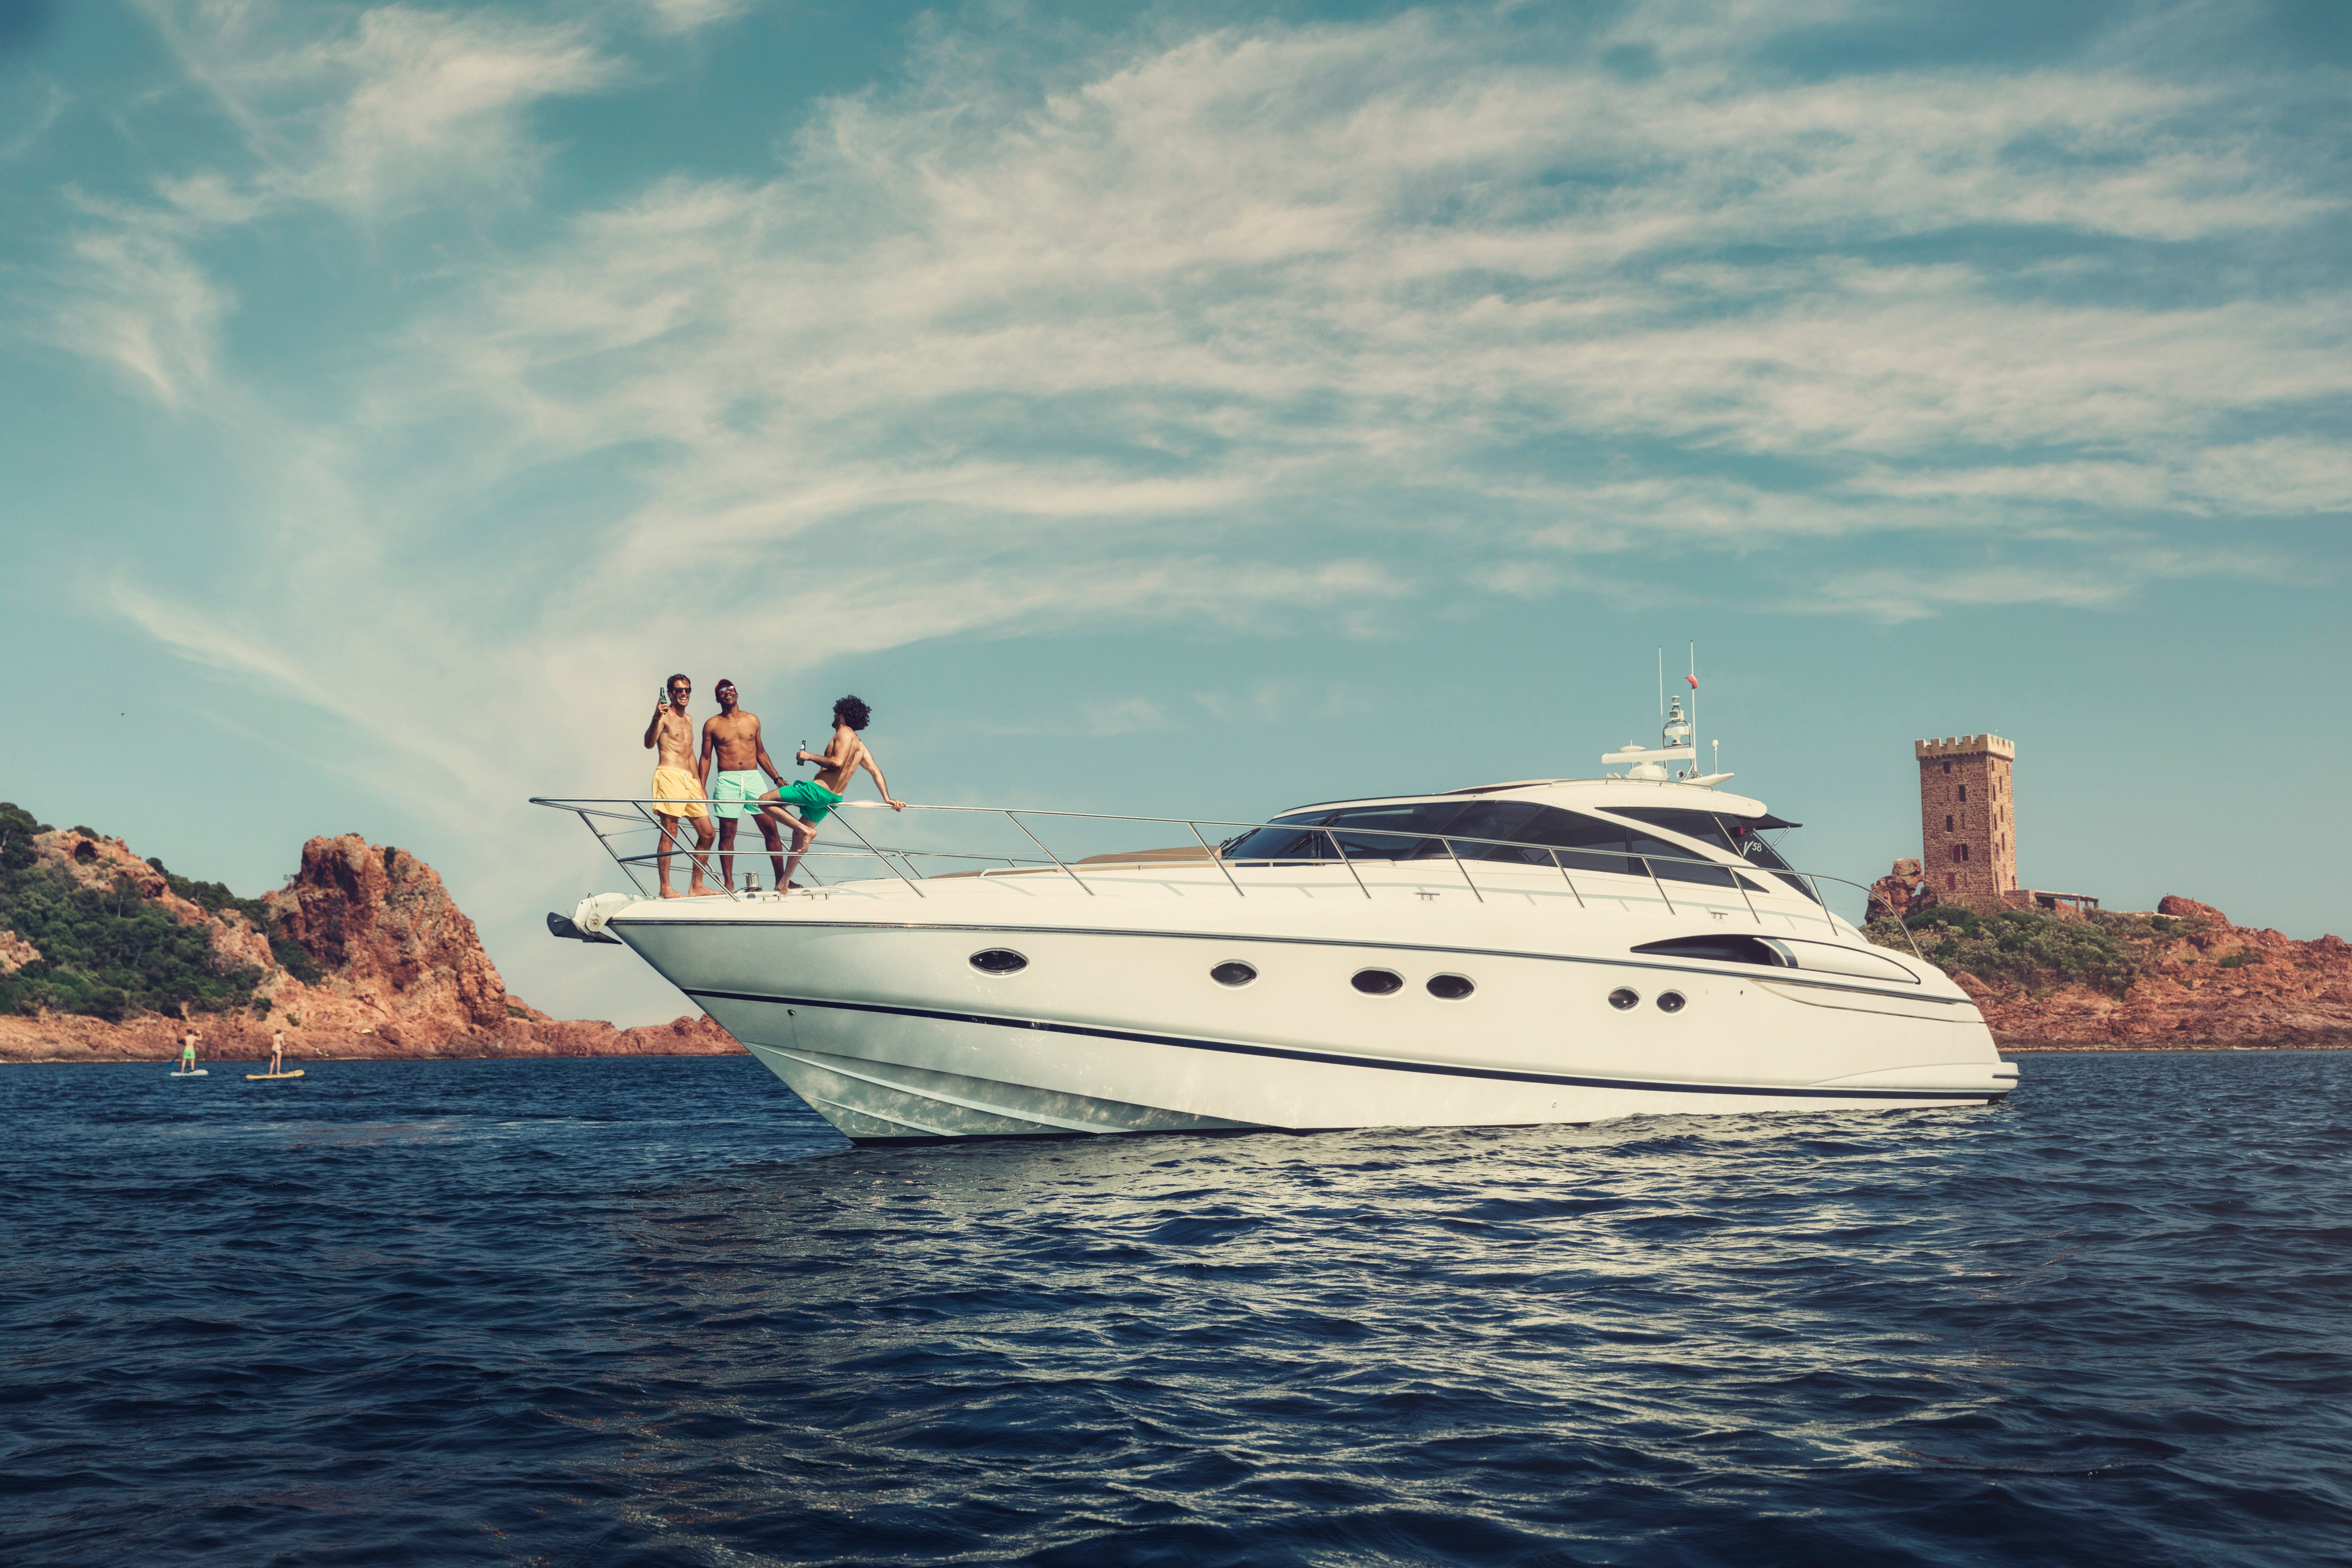 ᐅ Boat & Yacht – Air conditioners, refrigeration and sanitation